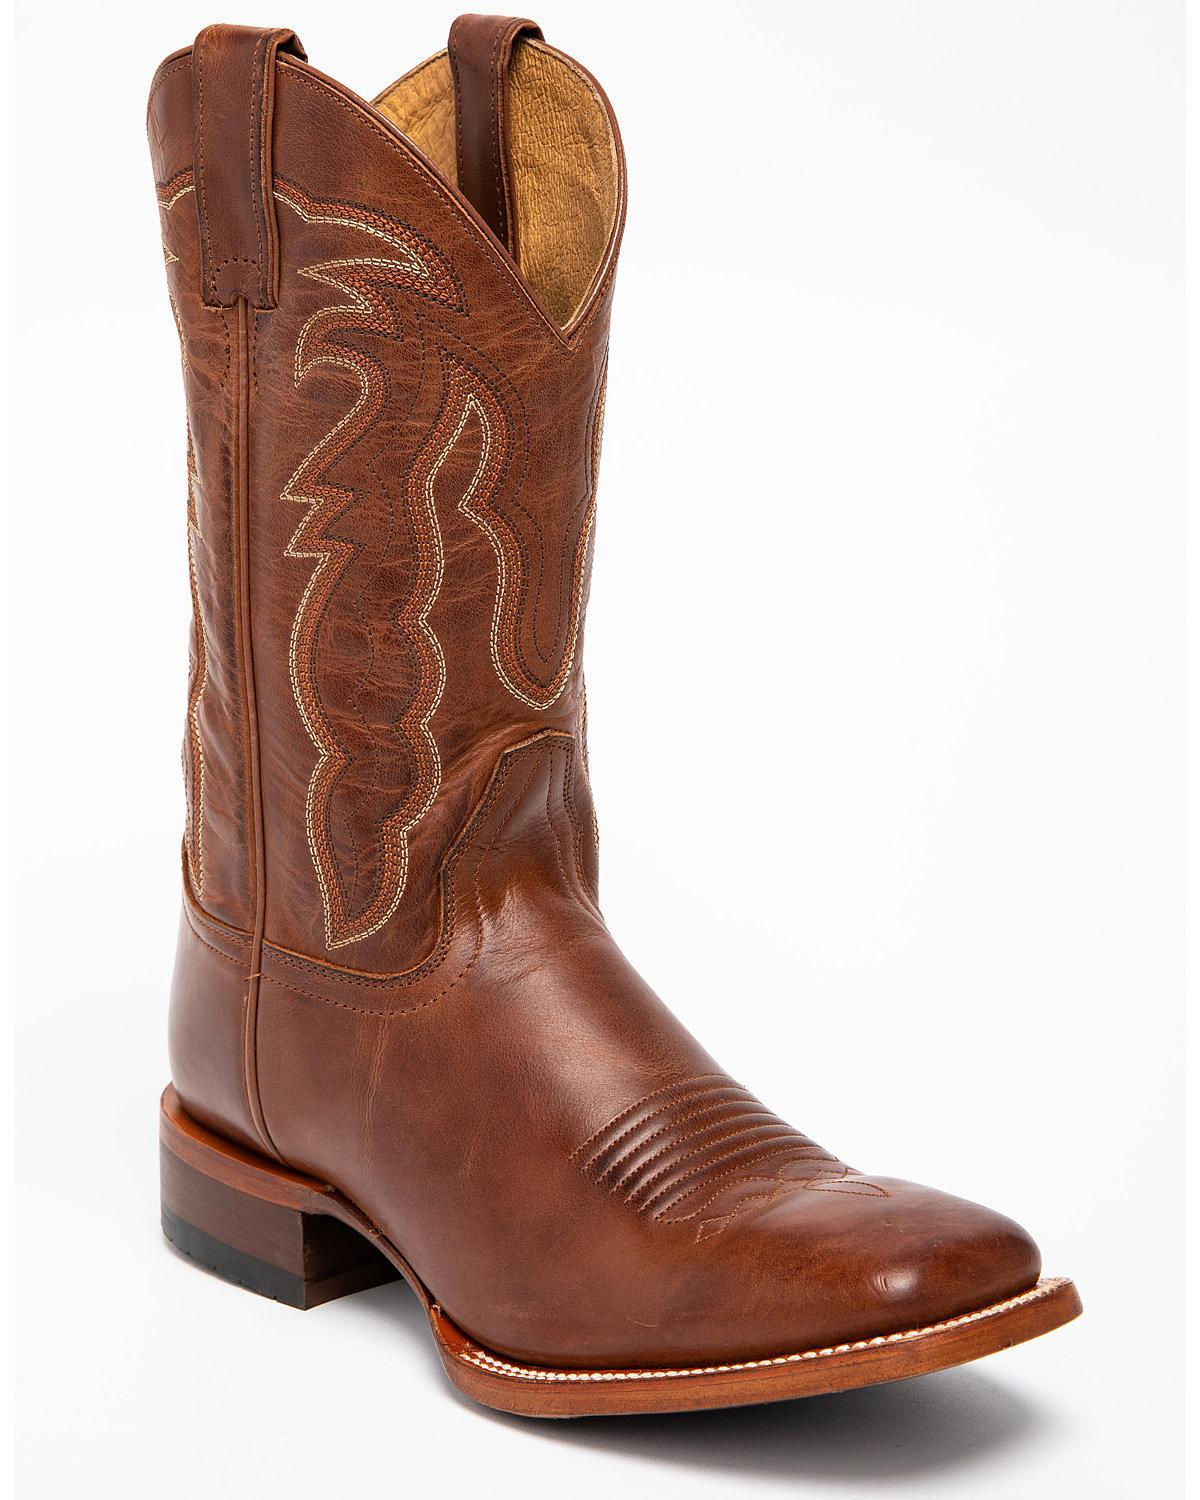 Where Can I Buy Cowboy Boots For Cheap